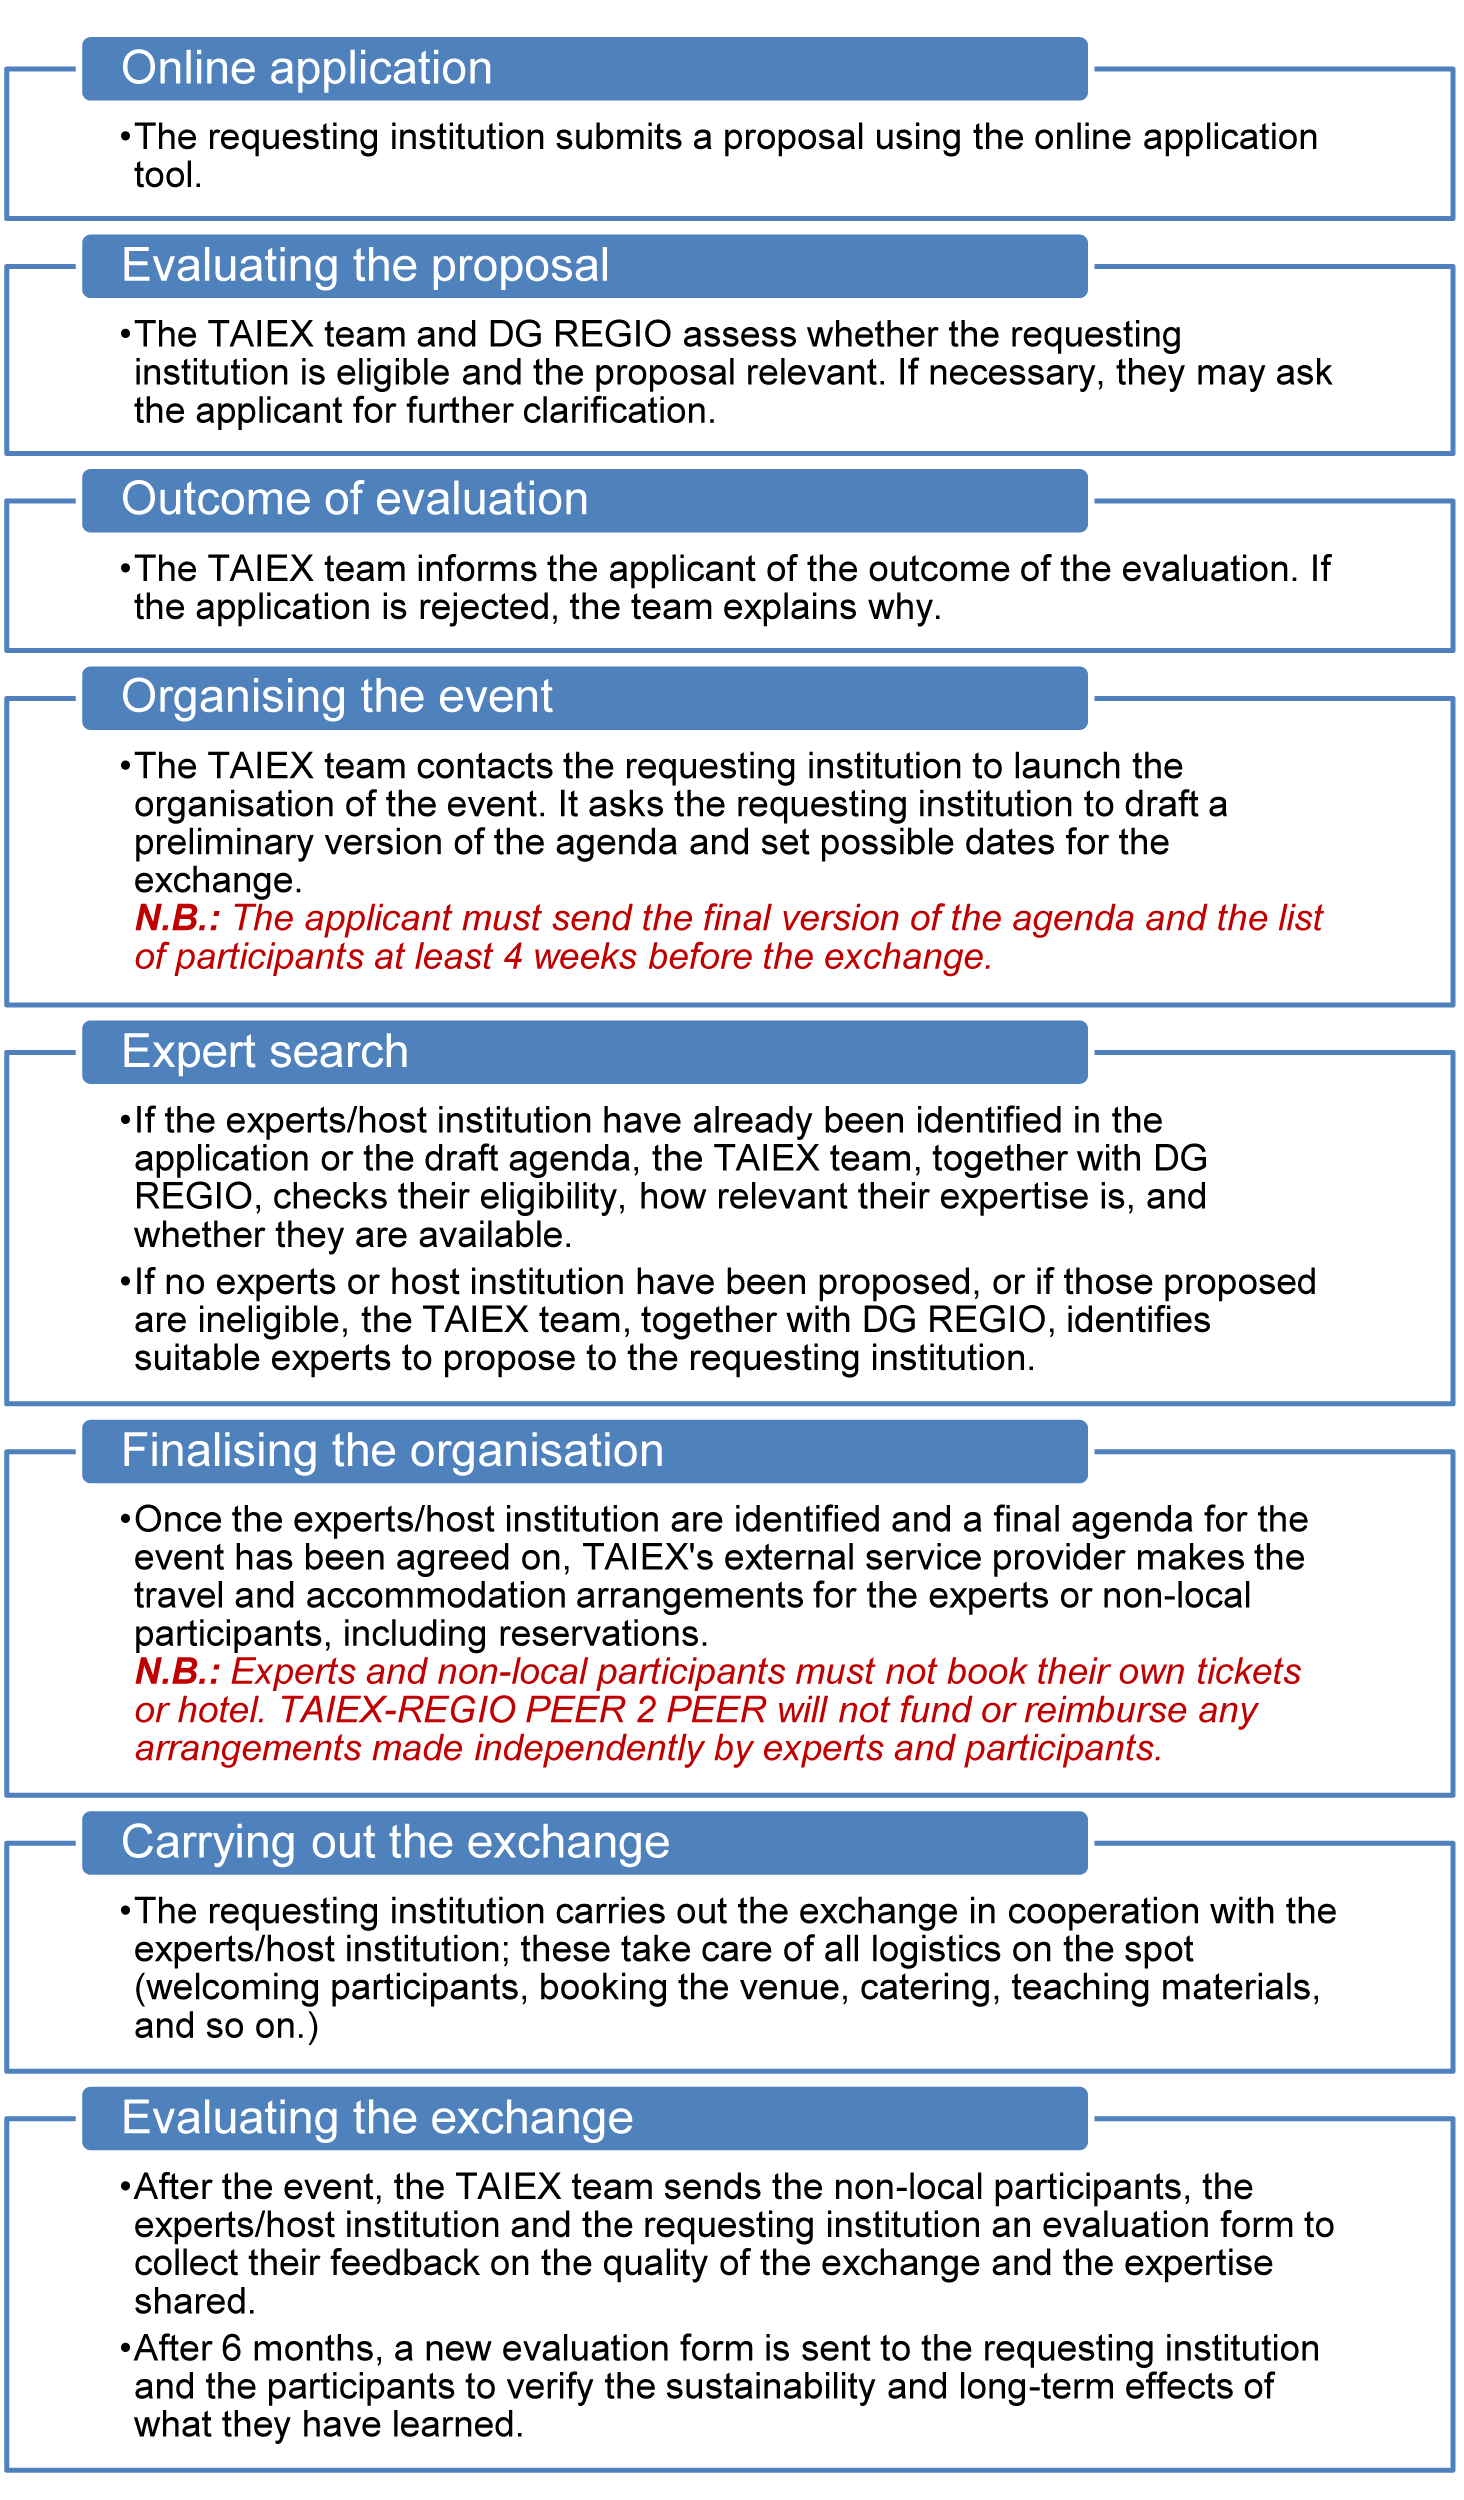 TAIEX-REGIO PEER 2 PEER - FREQUENTLY ASKED QUESTIONS - Regional